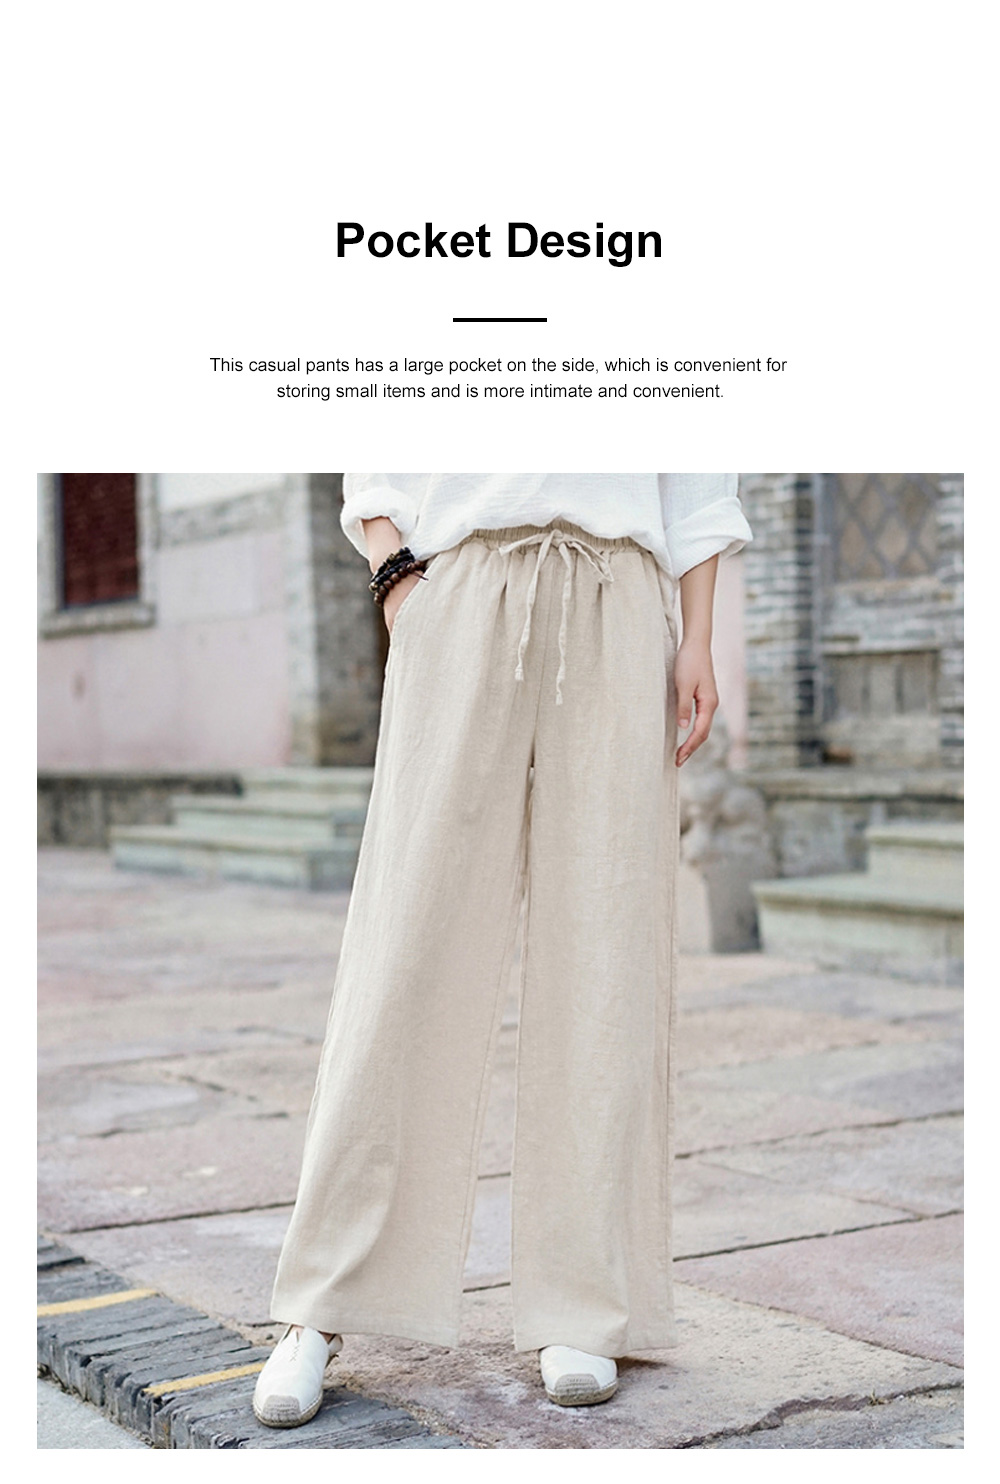 Literature Art Retro Chinese Style Cotton Hemp Leisure Pants Meditation Practice Pant Taiji Pants Linen Pants Women's Wide Leg Pants 3